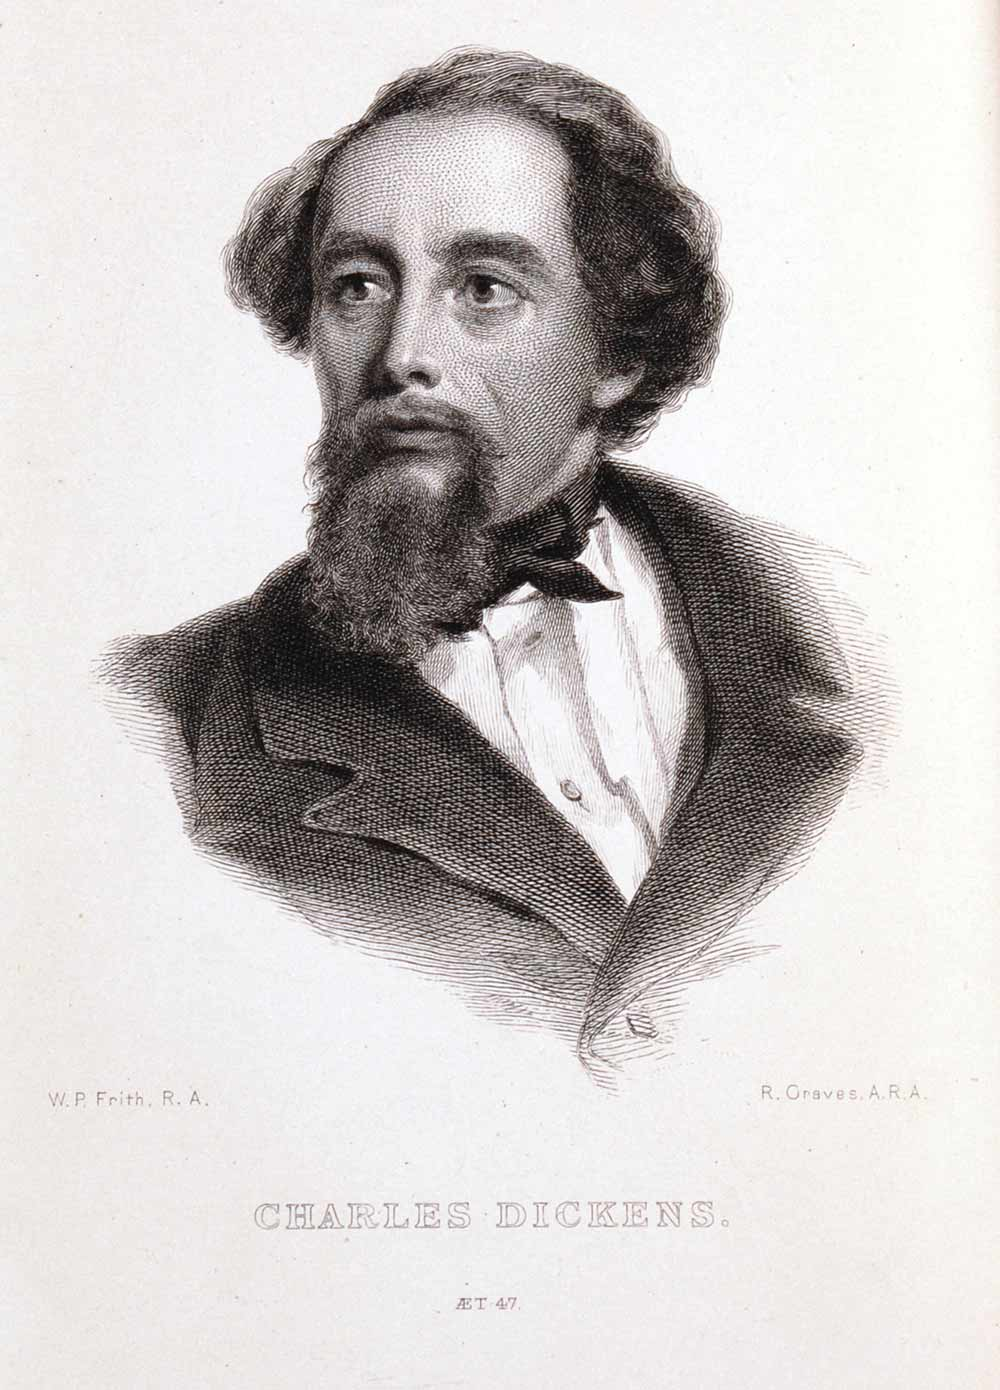 John Forster. The Life of Charles Dickens, Volume 2. London: Chapman and Hall, 1872